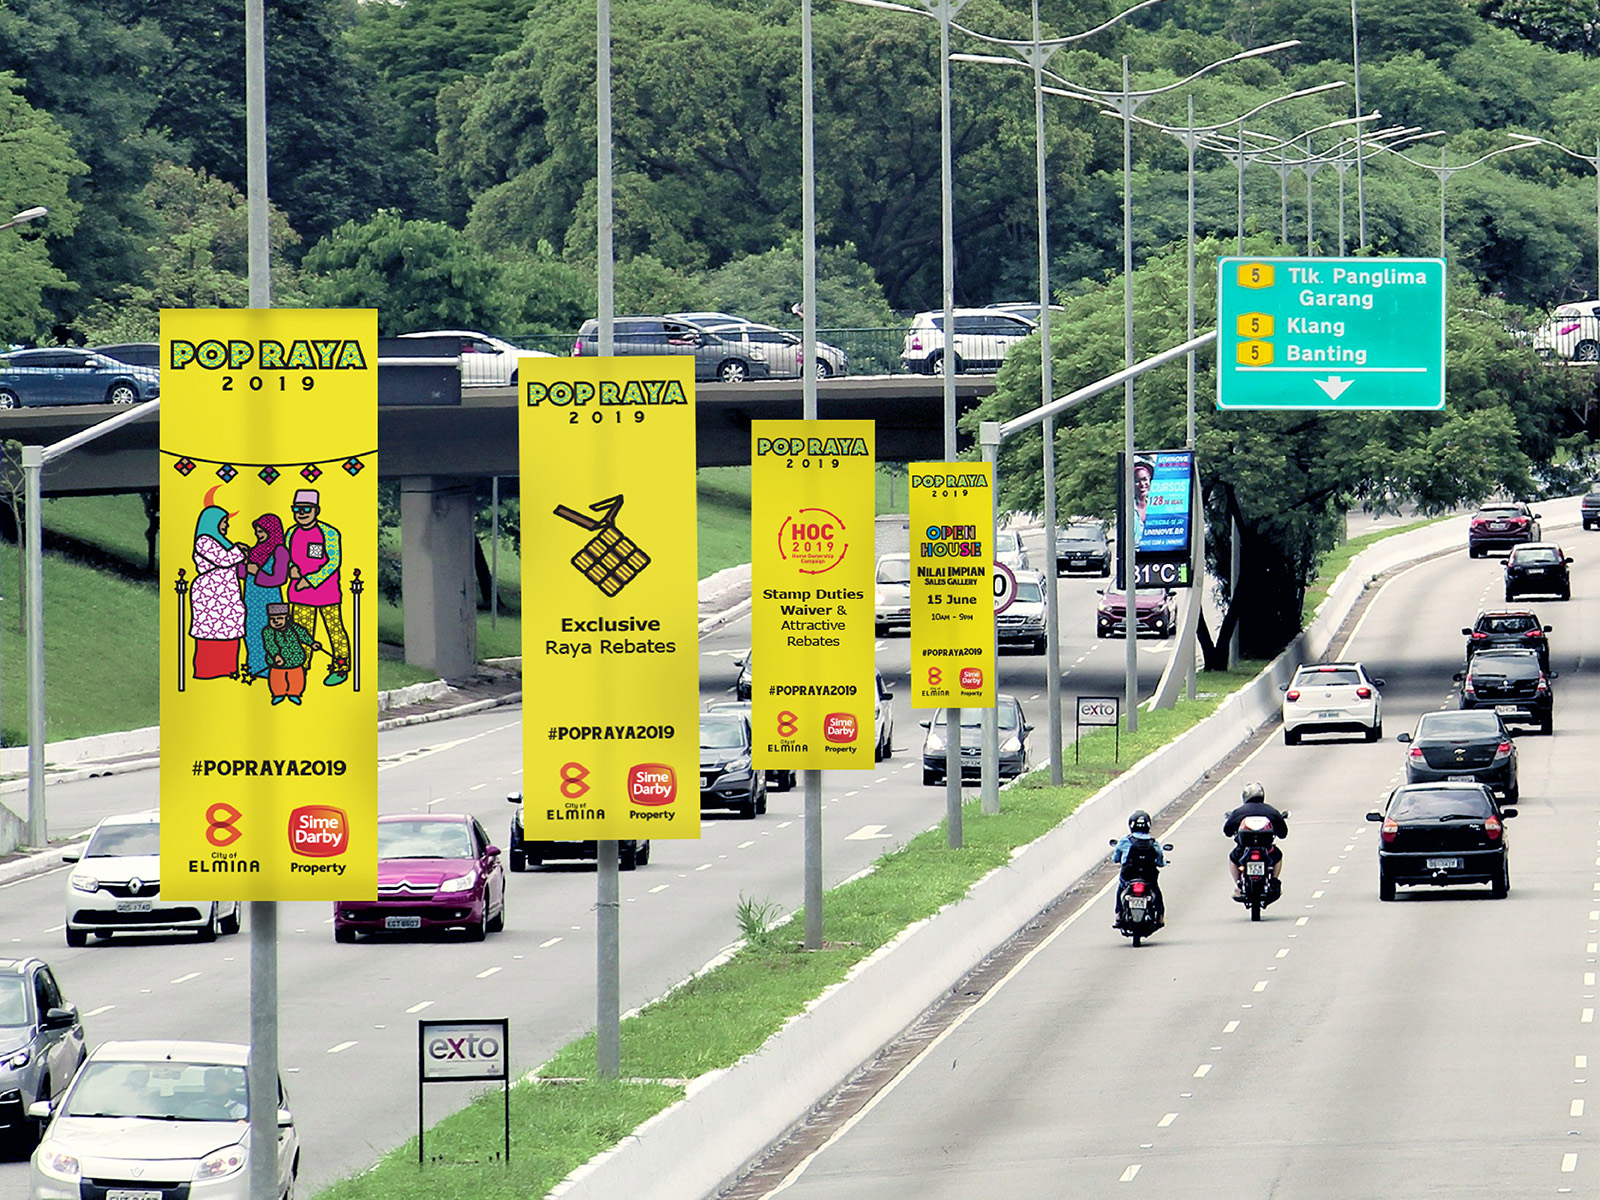 Sime Darby POPRAYA 2019 key visual adaptation into street buntings which appeared on few major highways